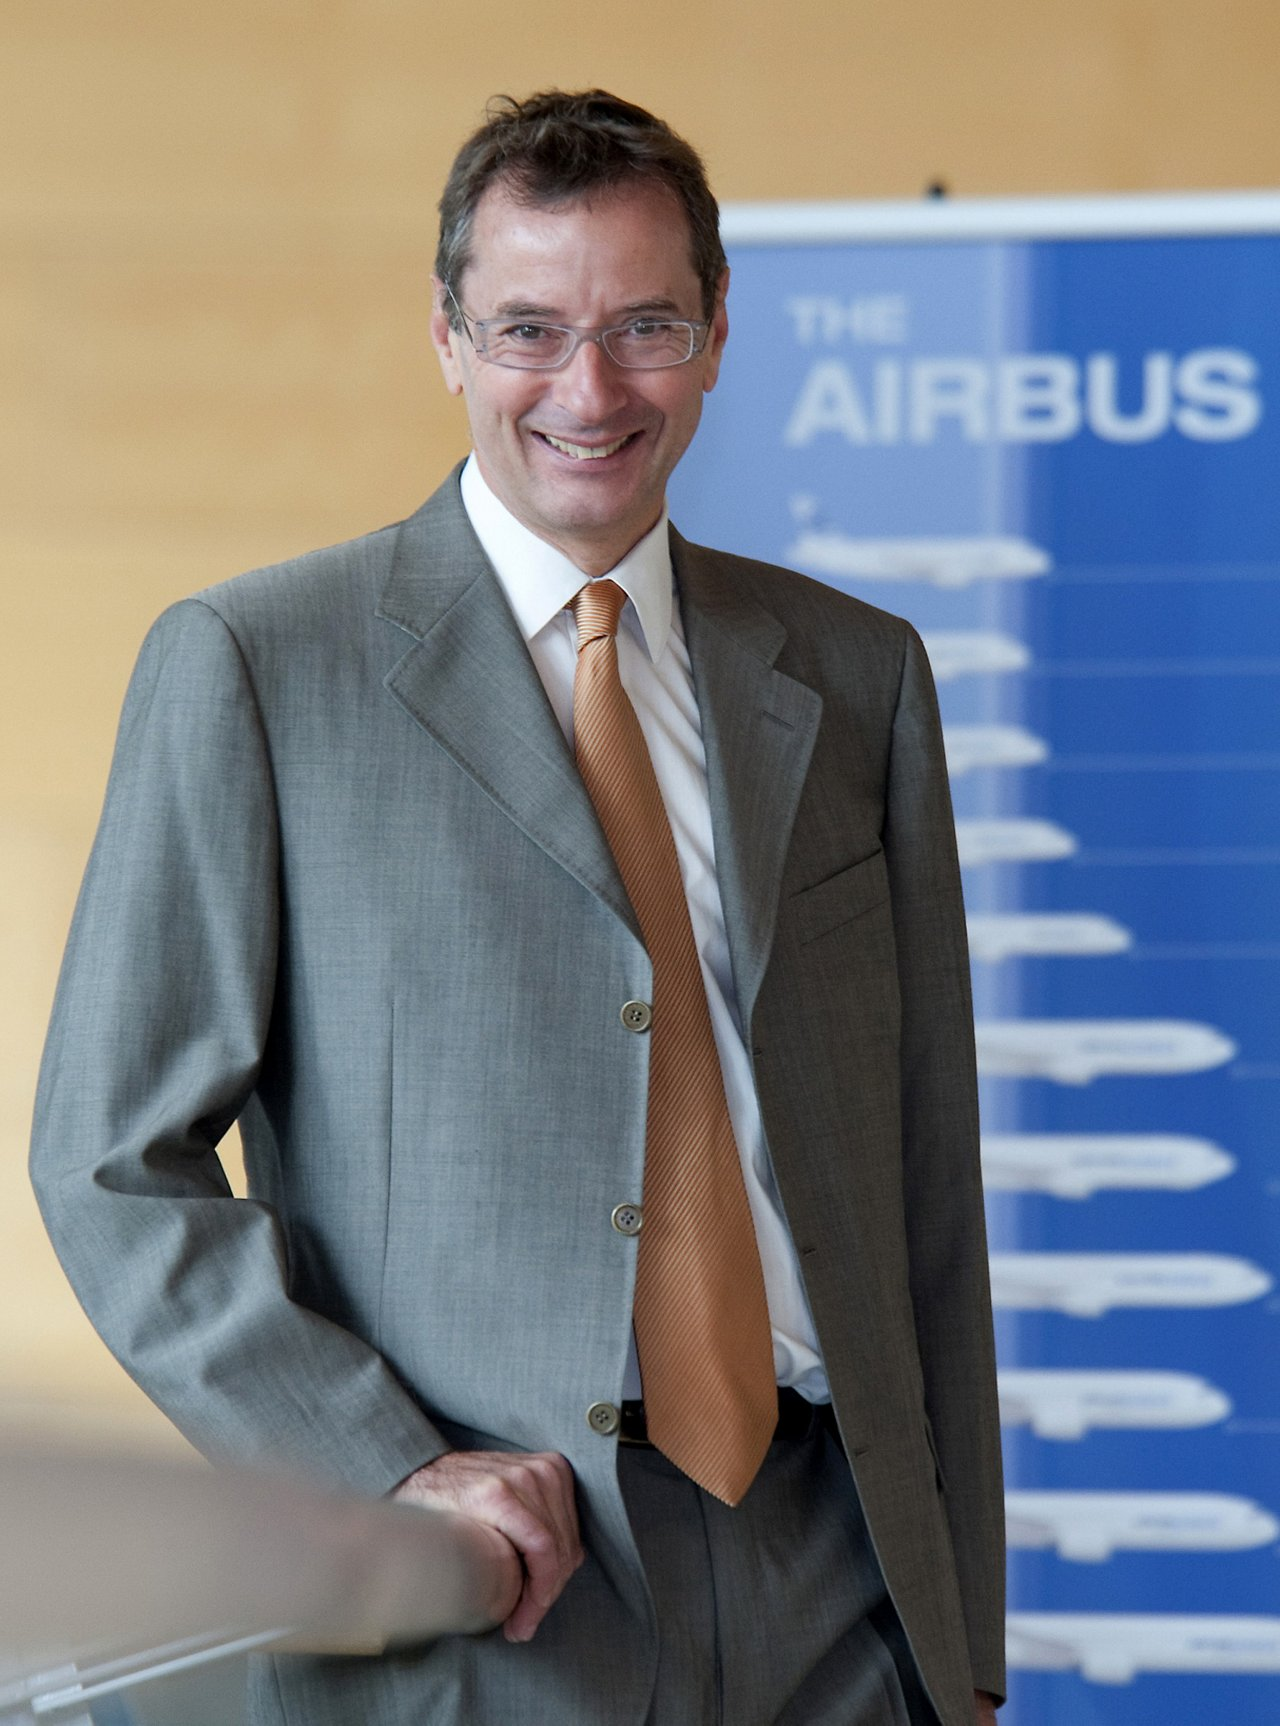 Airbus FYI 2013 - Charles Champion Executive Vice President Engineering at Airbus and FYI 2013 patron